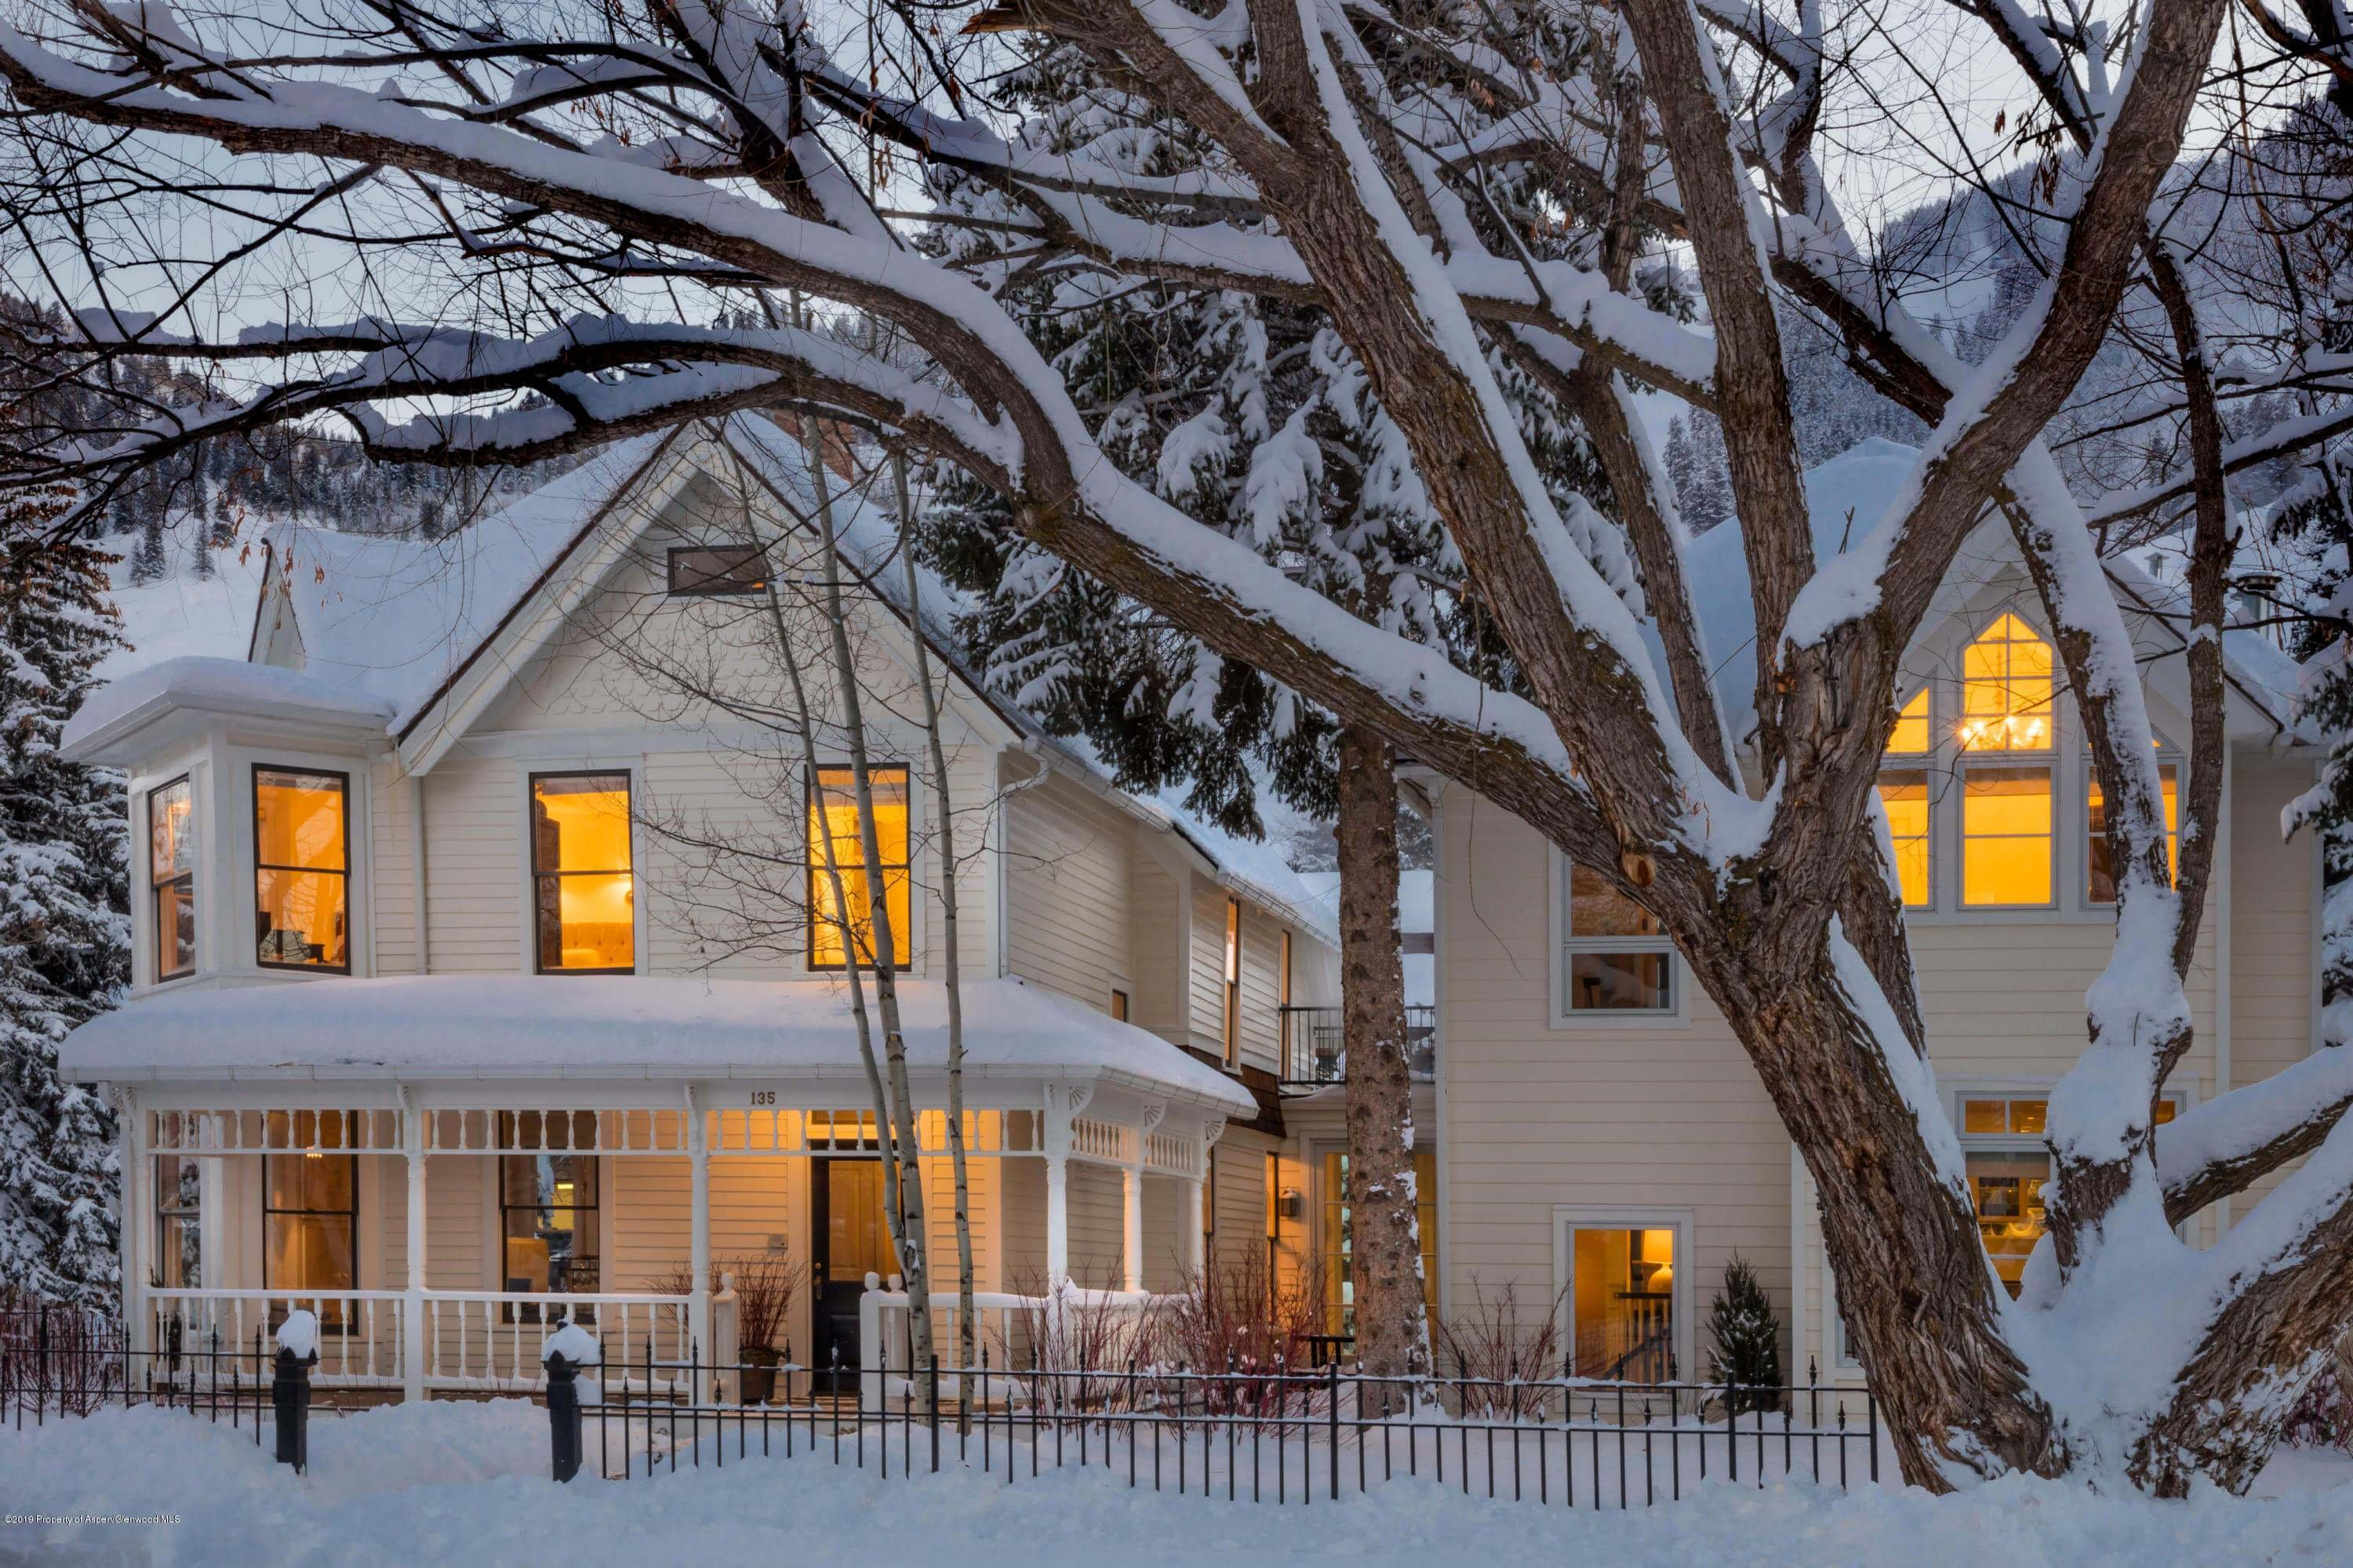 Exquisite 1890/2005 Remodeled 7 Bdrm Aspen Victorian at 135 E Cooper Ave Closes at $21.95M/$3,396 SF Unfurnished Image